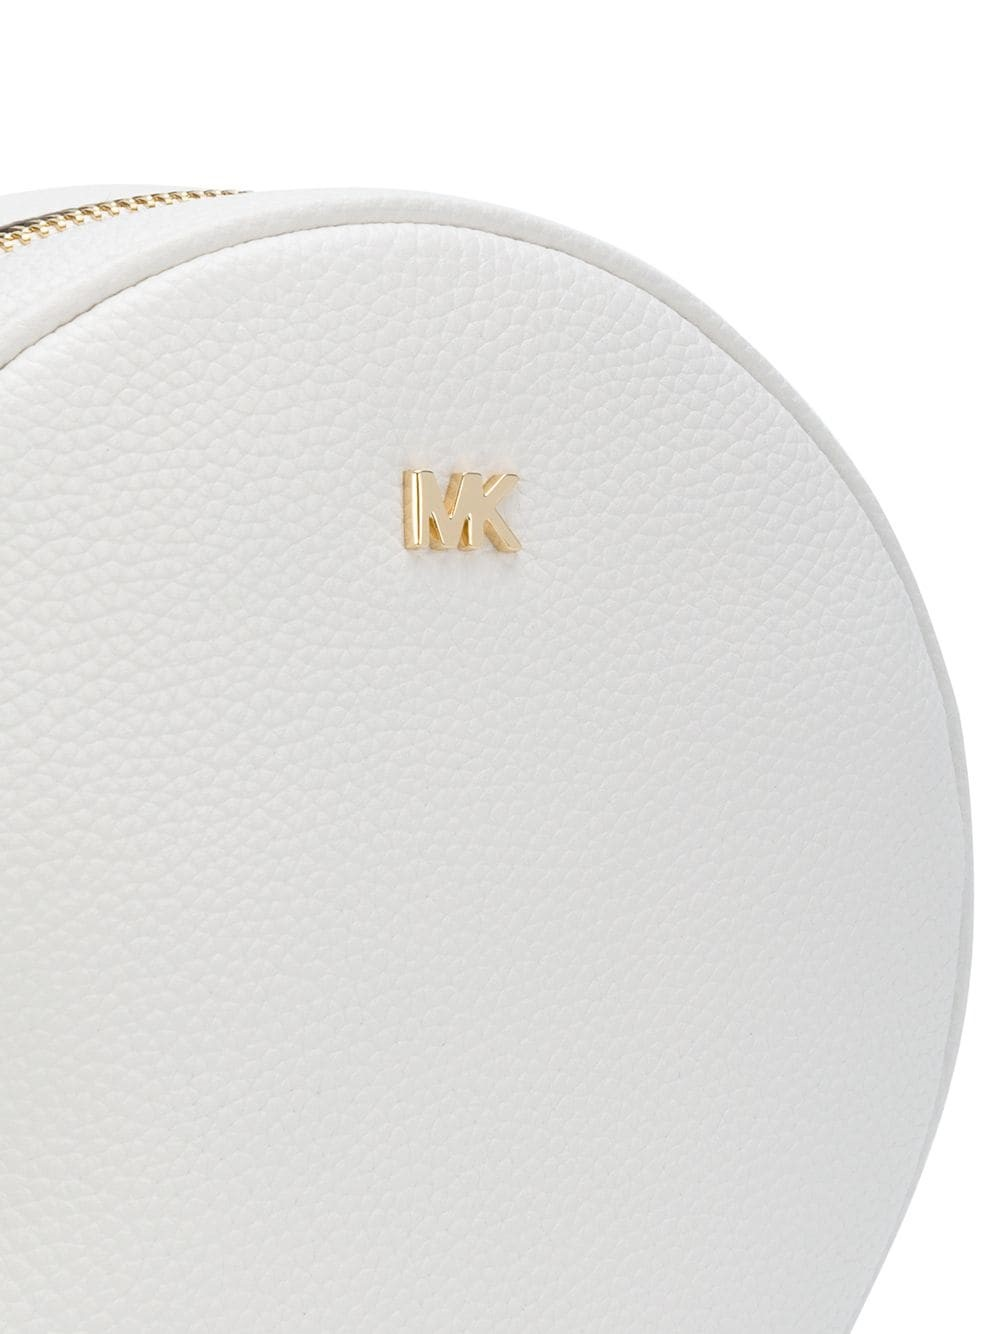 43bacc1a2637 michael kors mk CROSS BODY BAG available on montiboutique.com - 28389